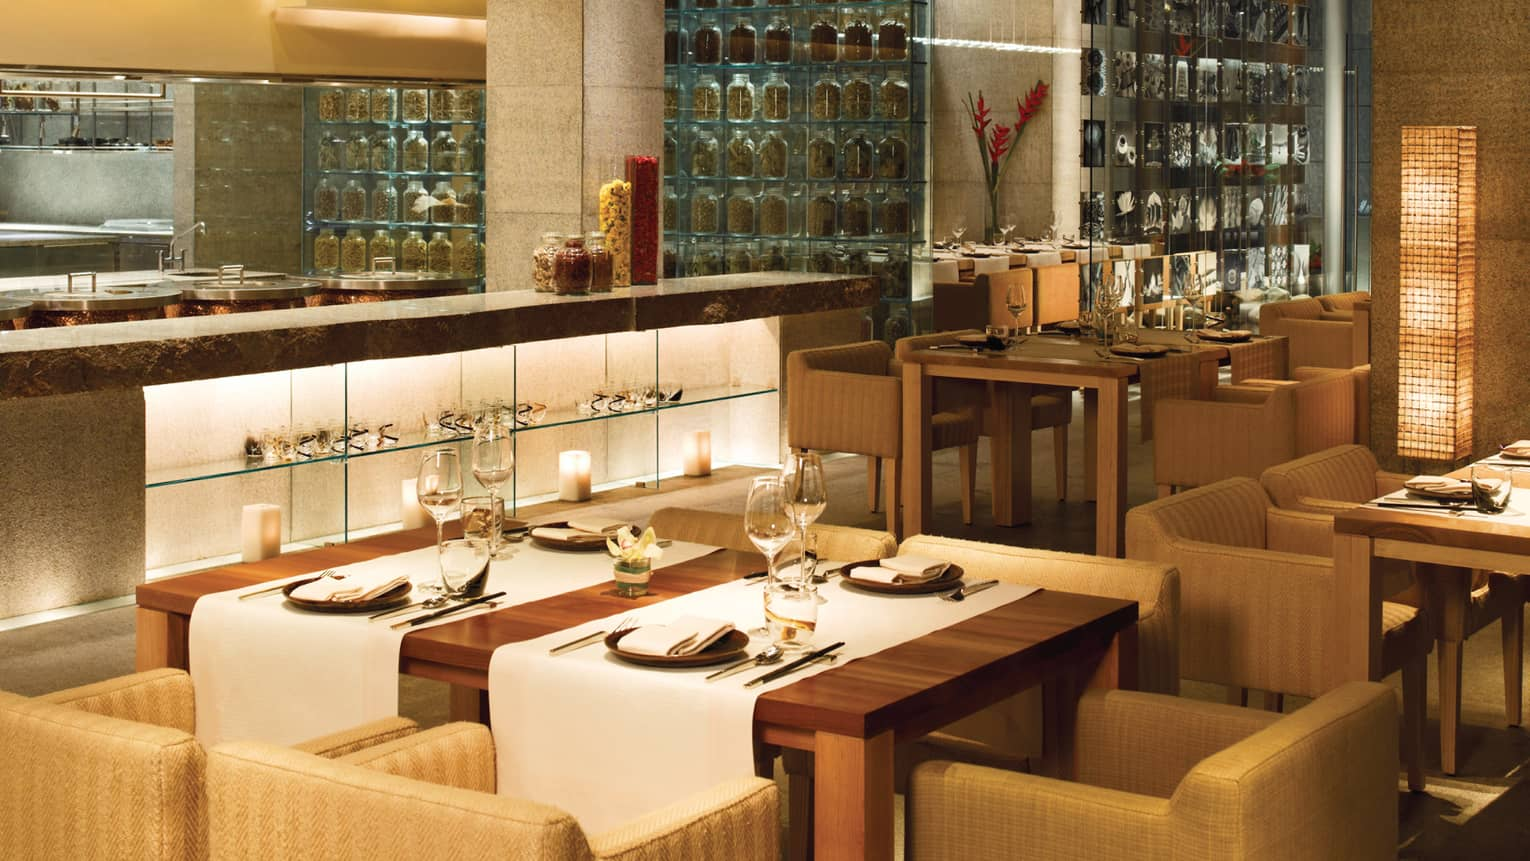 San Qi dining room, modern wood table with white runners, counter, glass wall with spices